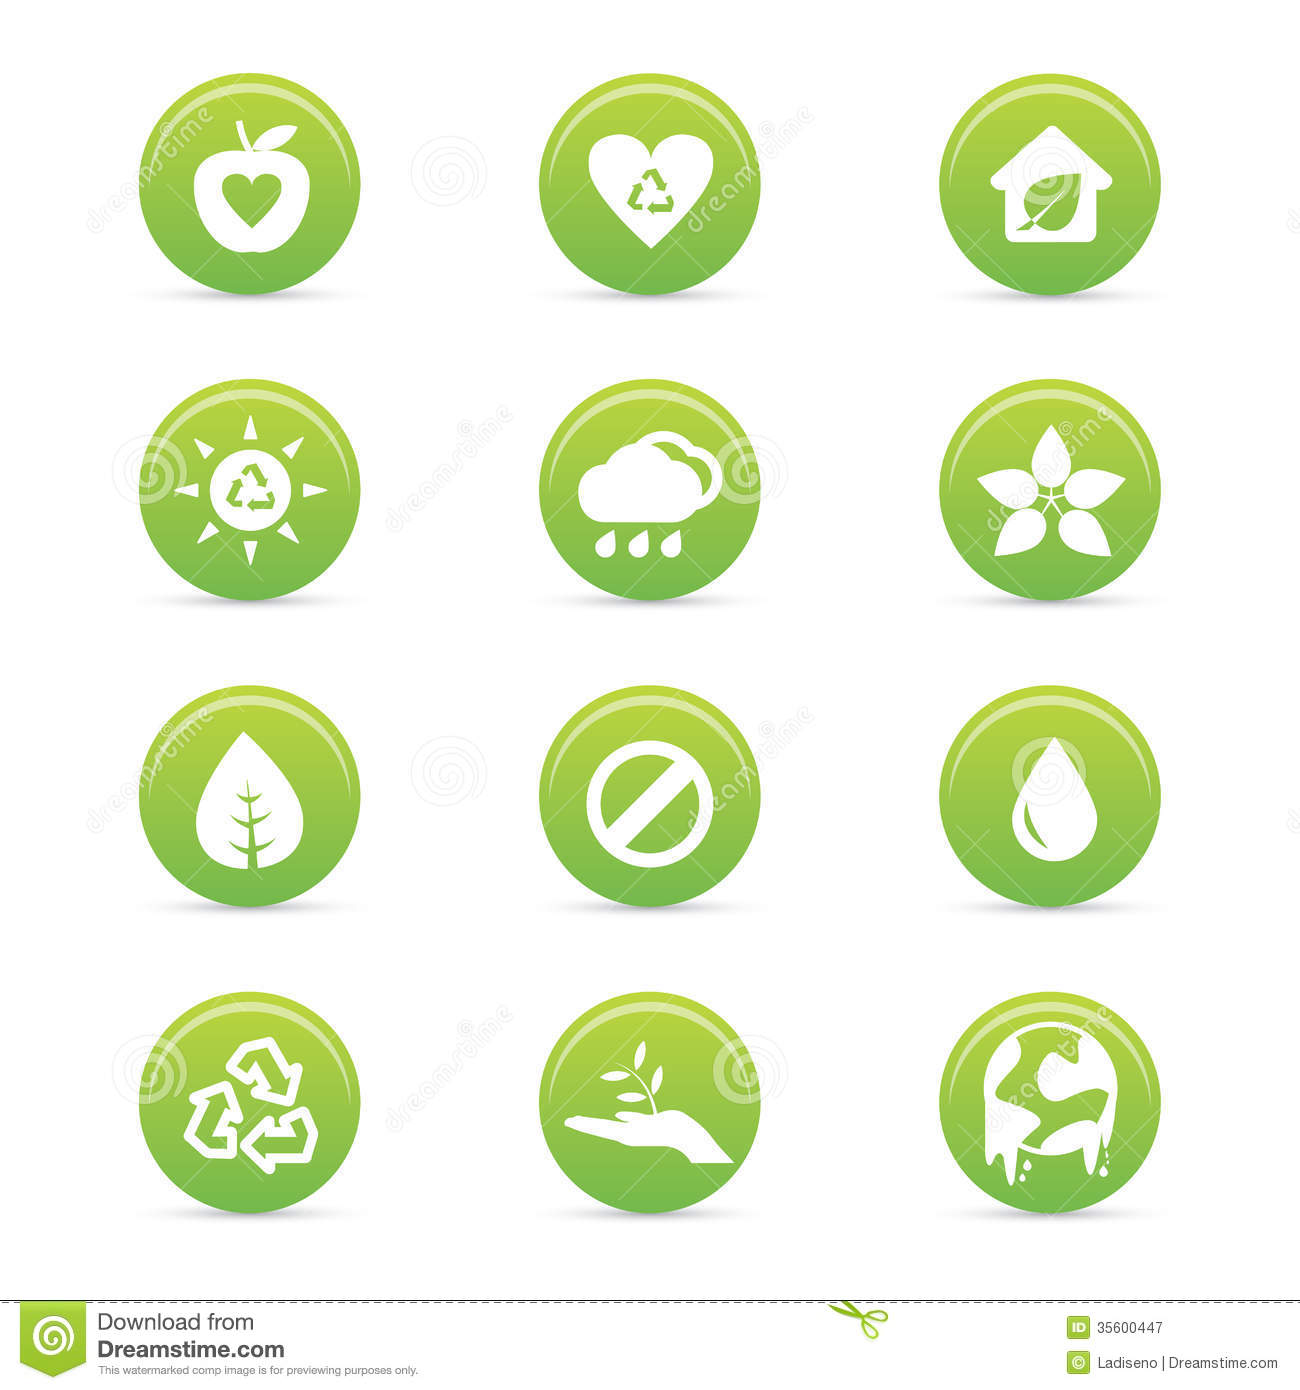 Sustainability Icons Royalty Free Stock Photography - Image: 35600447